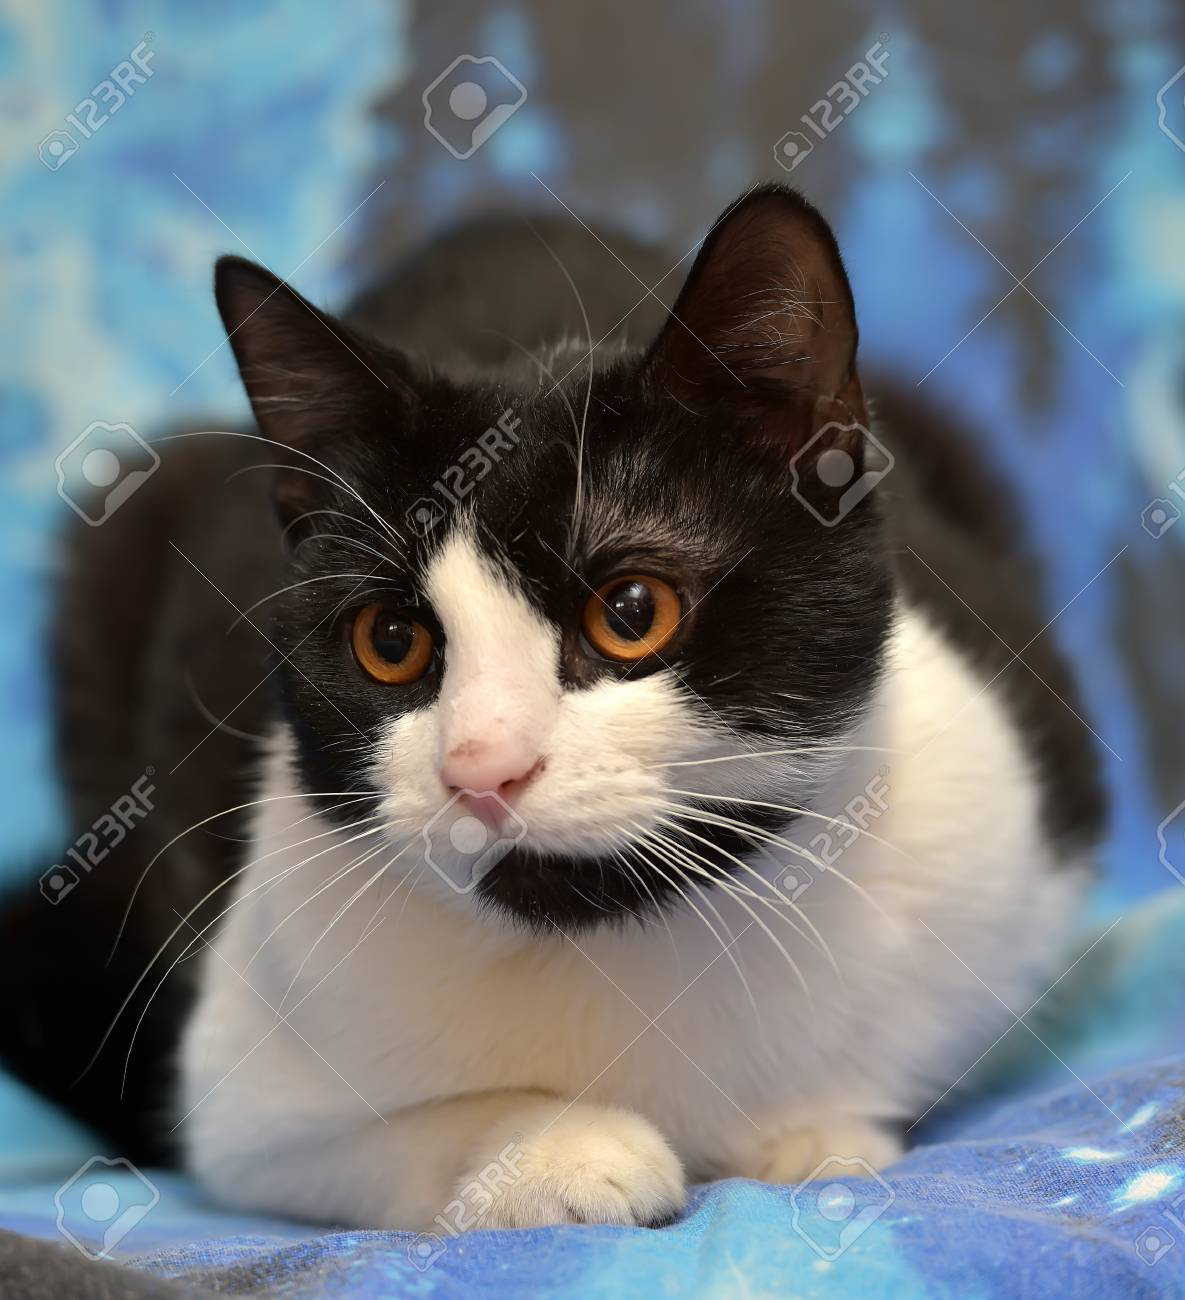 Black With White Short Haired Cat With Orange Eyes Lies On A Stock Photo Picture And Royalty Free Image Image 79233794